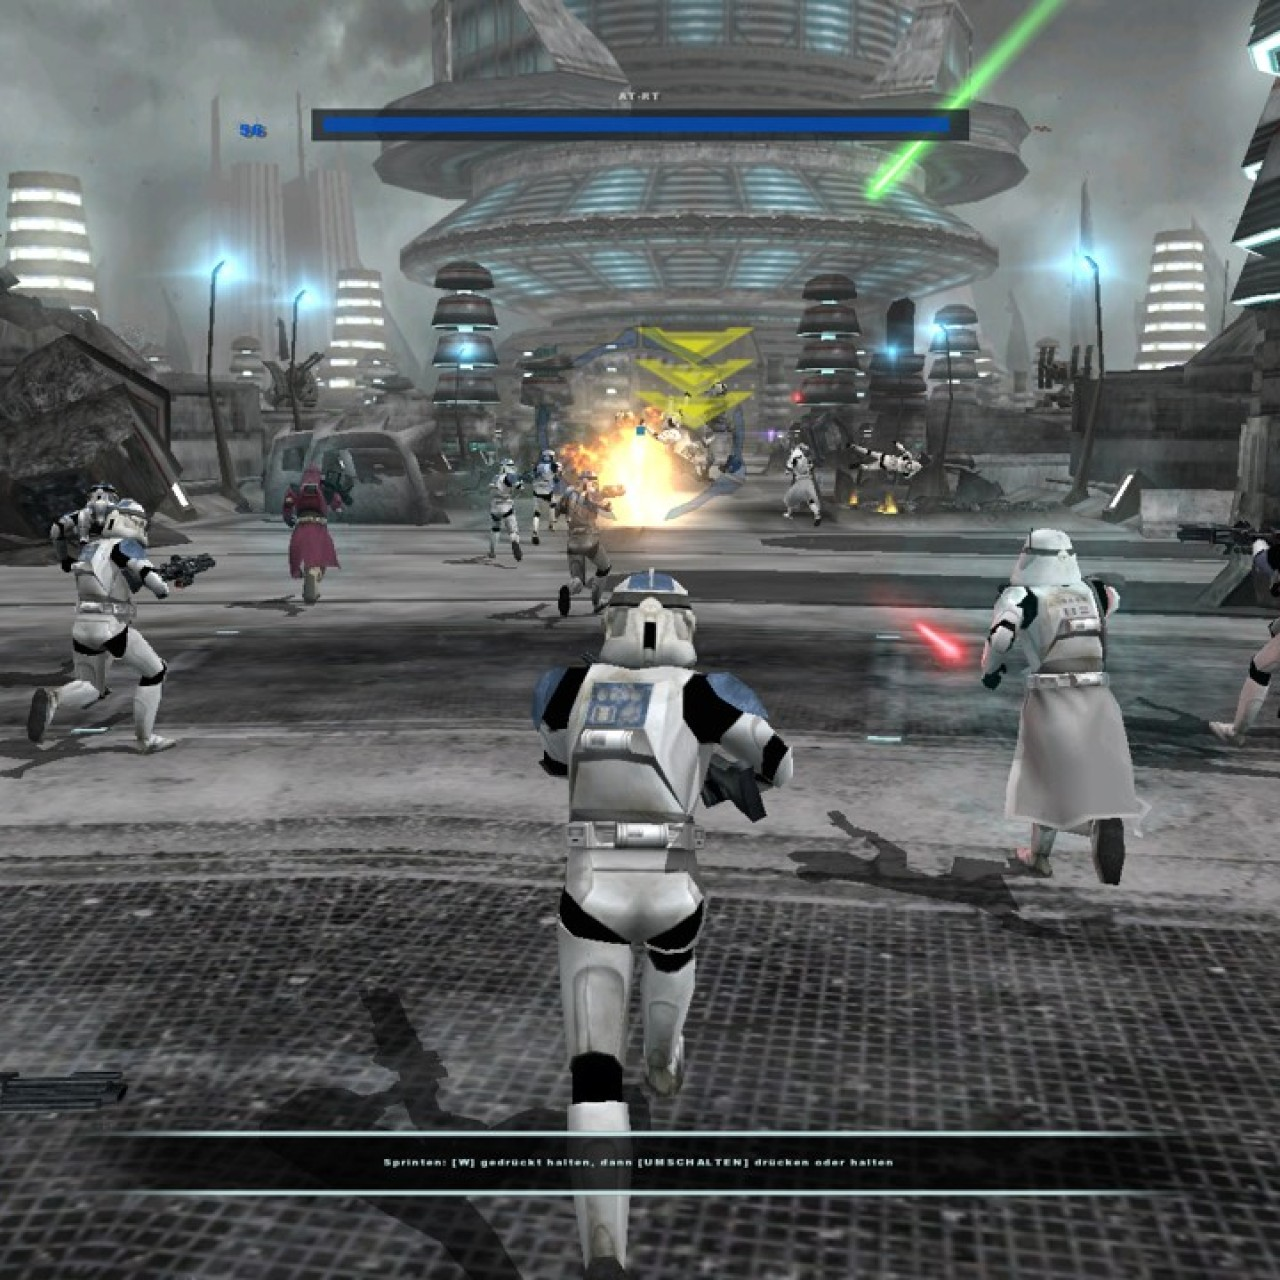 The 10 best Star Wars video games the universe has ever seen